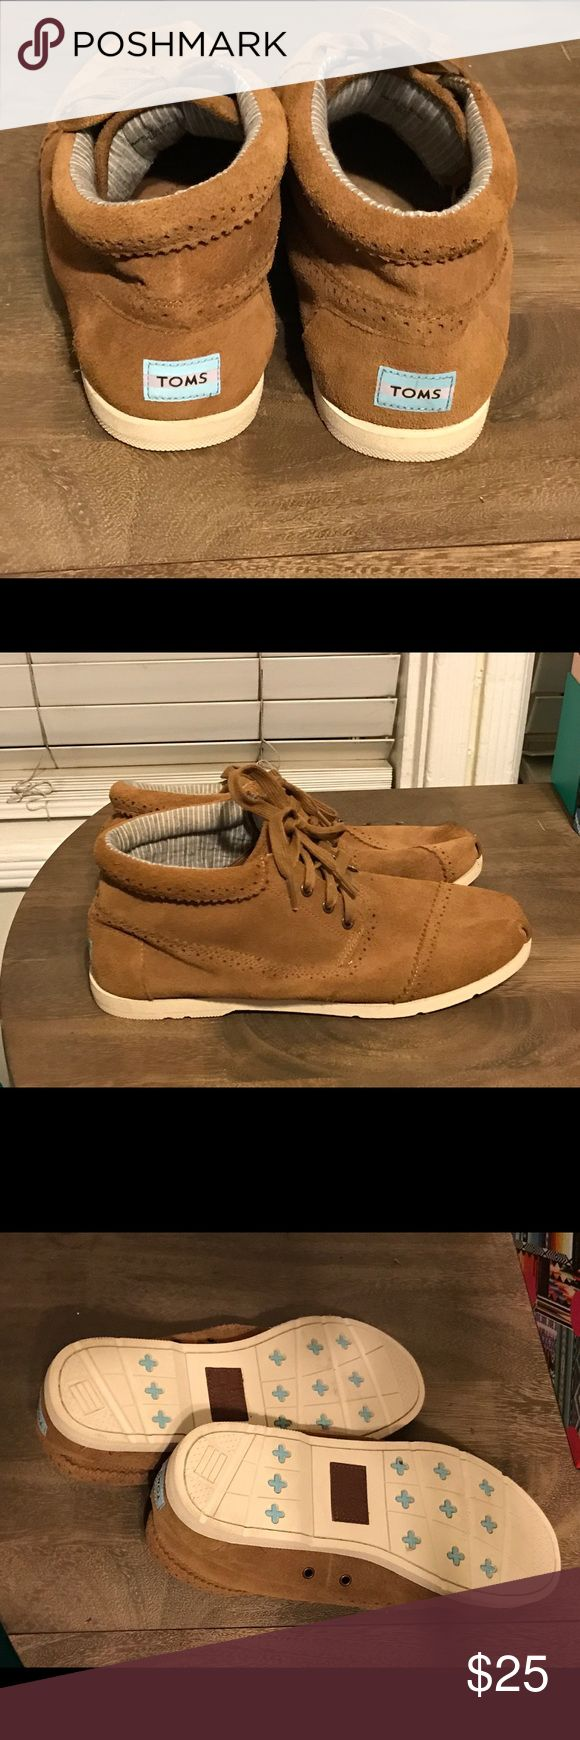 NWOT Toms Wisett Desert Suede Botas Chukka Boot Like new, these were given as a gift and were too tight. They are very comfortable TOMS for Men. TOMS Shoes Chukka Boots